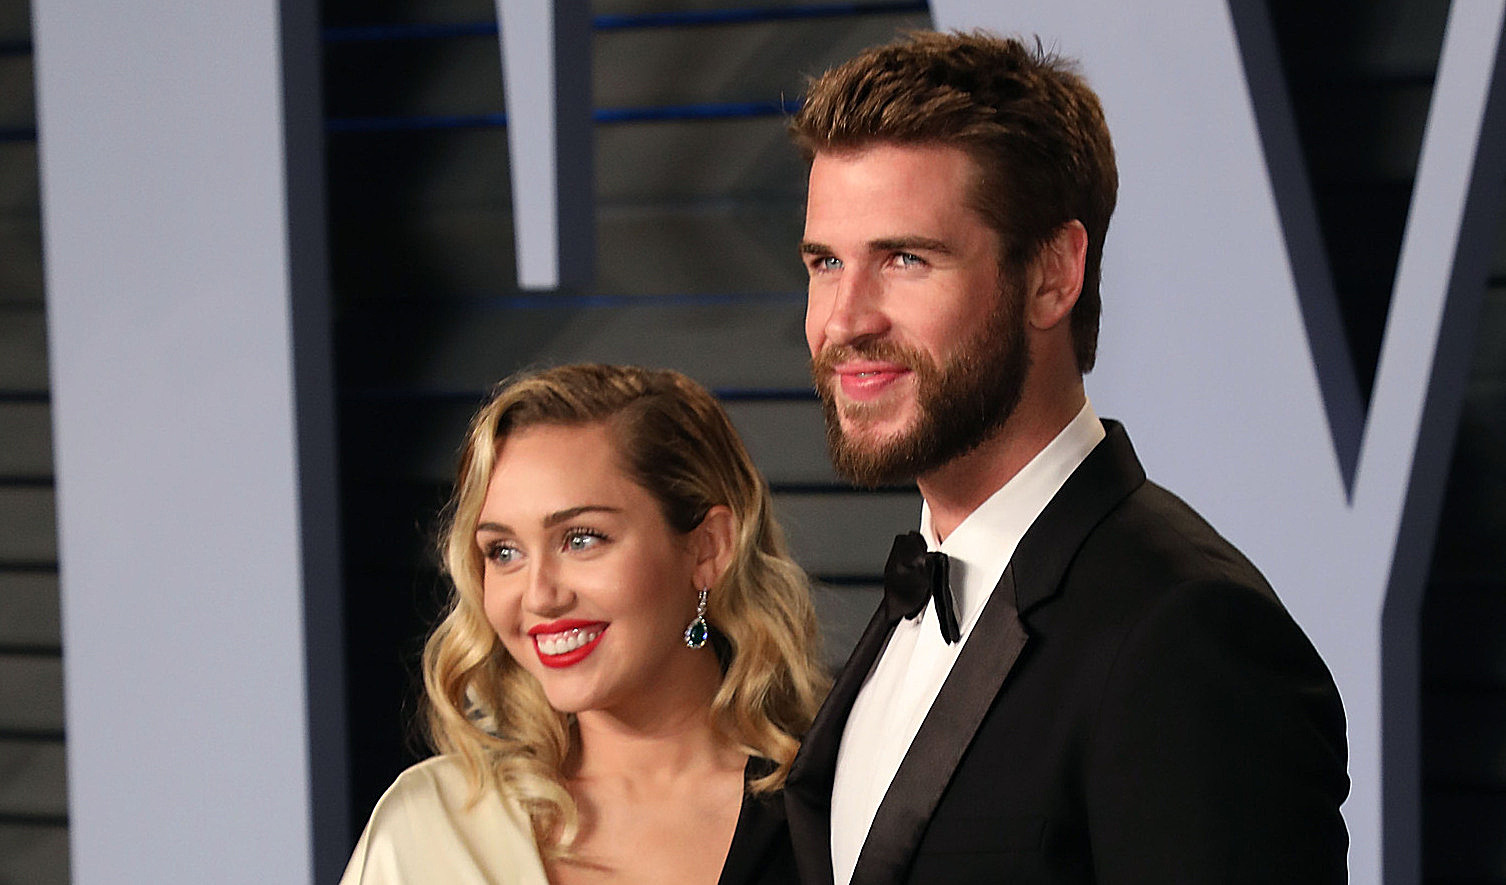 Did Miley Cyrus And Liam Hemsworth Get Married Social Media Photos Suggest They Did National Globalnews Ca